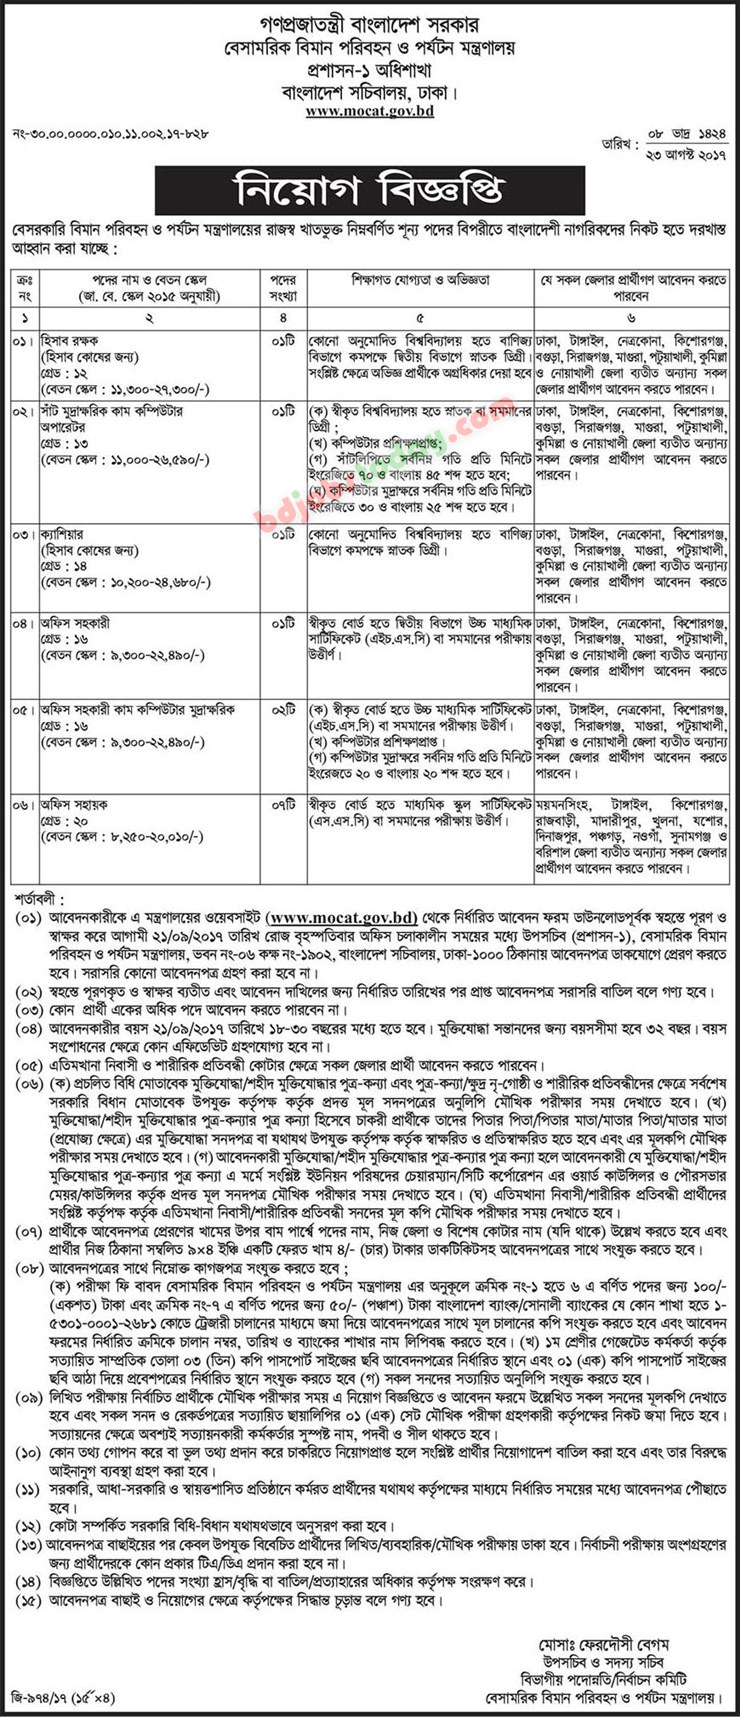 Ministry of Civil Aviation and Tourism jobs